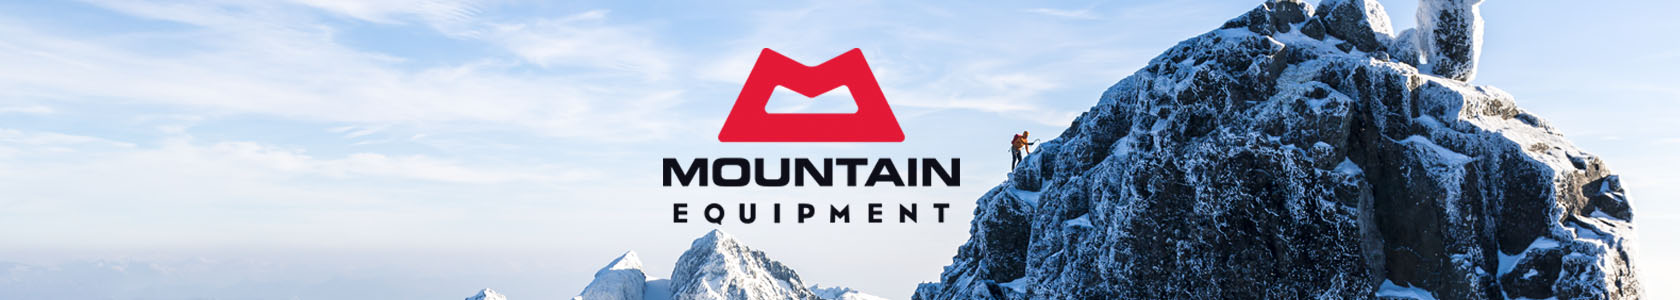 Rocks and snow with the Mountain Equipment brand logo in the middle.